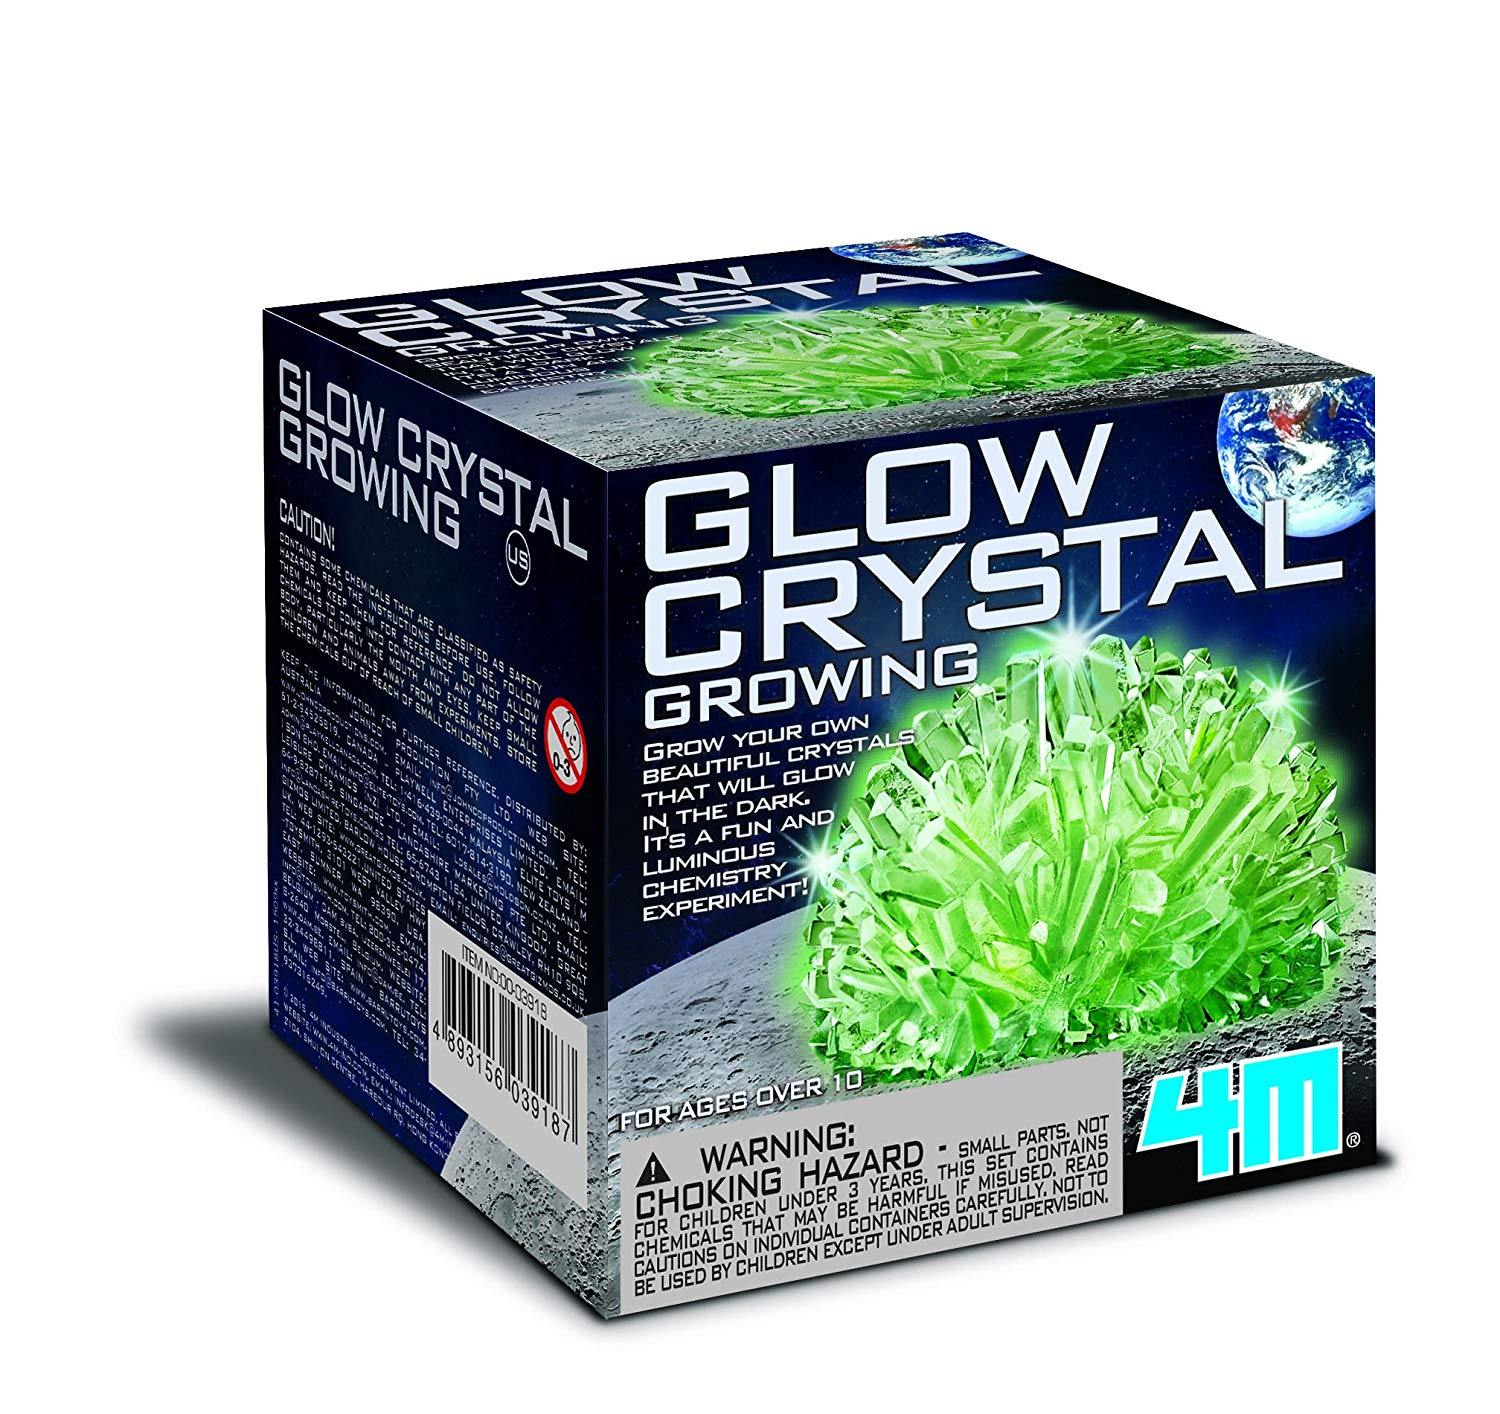 Glow Crystal Growing